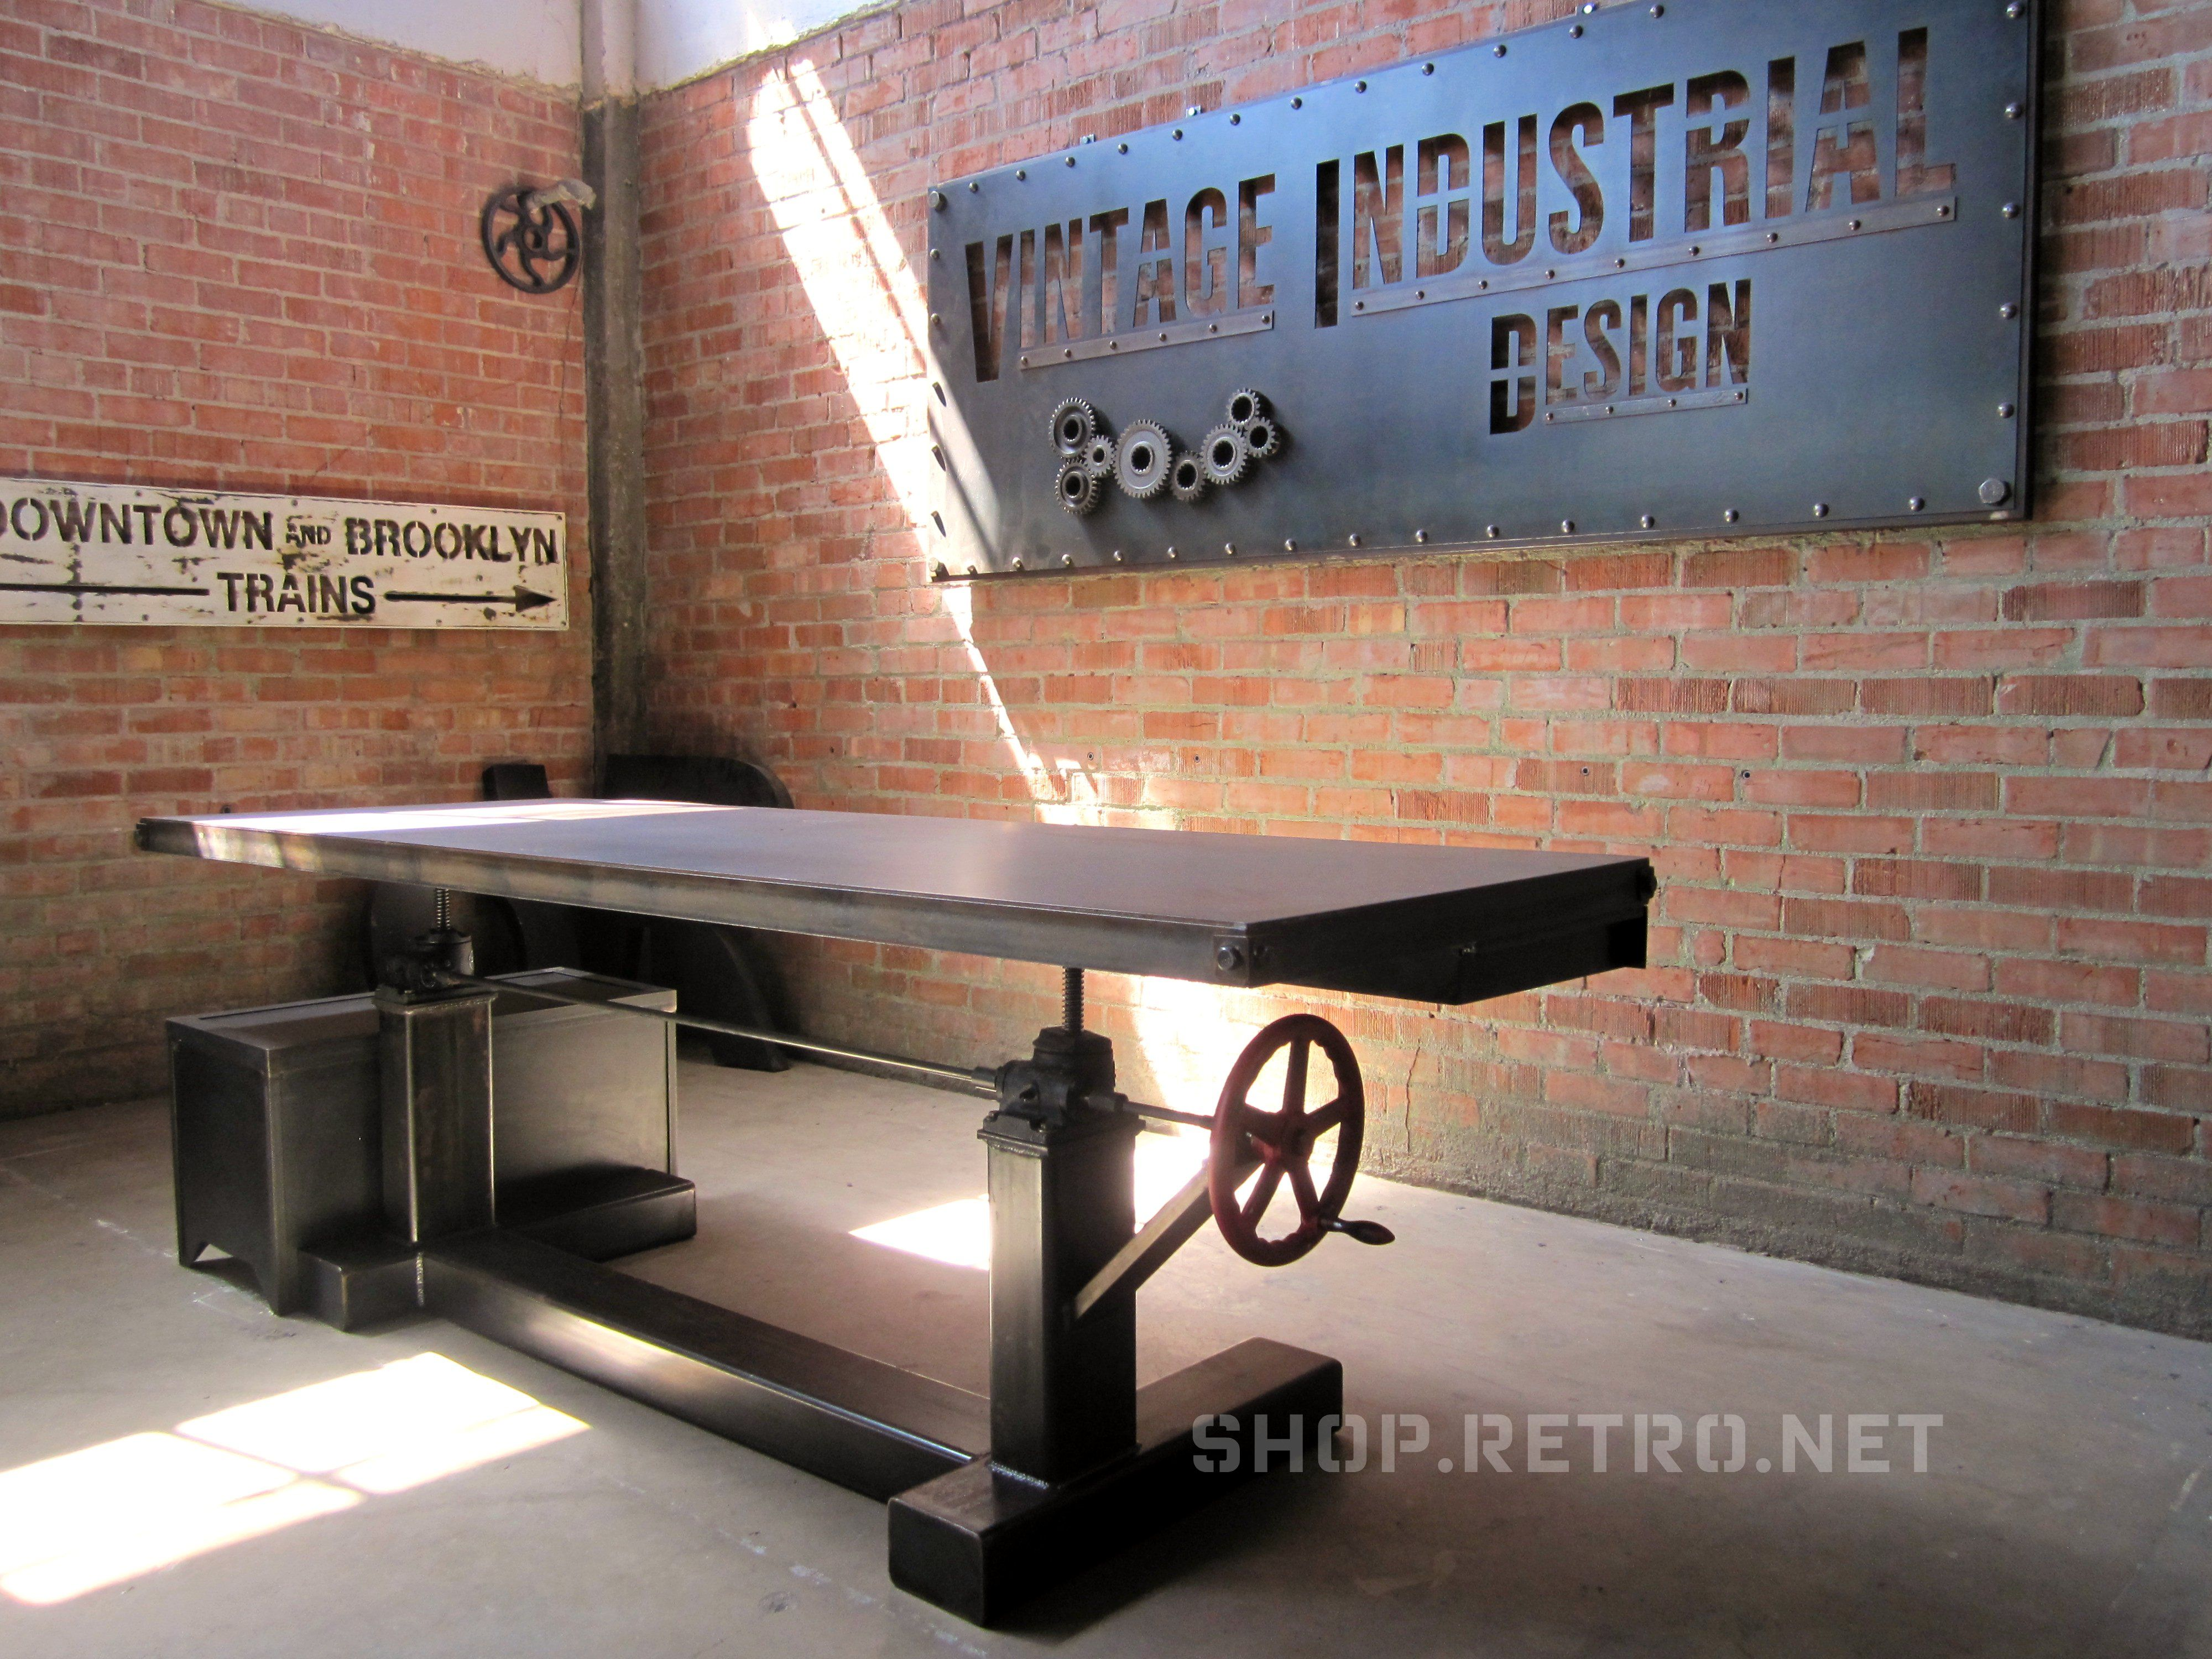 urban industrial furniture. ProductFIND By Interior Design. Industrial TableIndustrial DesignVintage FurnitureFrench IndustrialIndustrial SignageUrban Urban Furniture